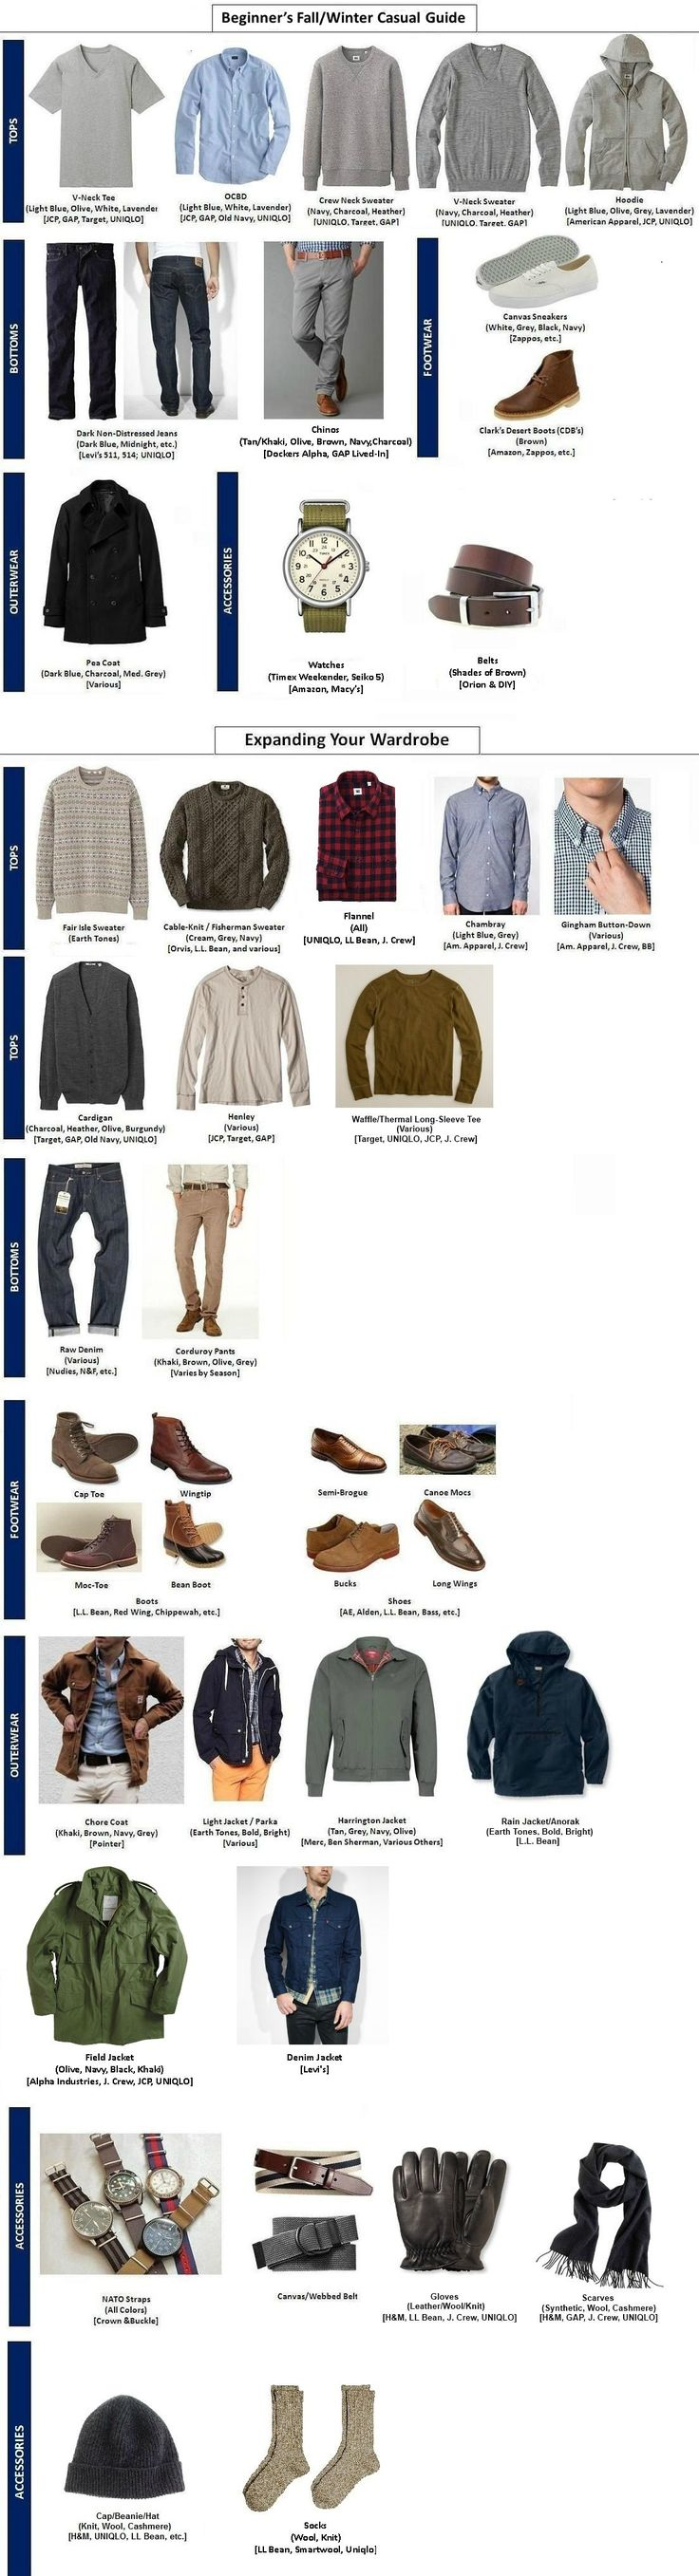 R Mfa Fall Winter Casual Guide Mens Style Guide Quotes Pinterest